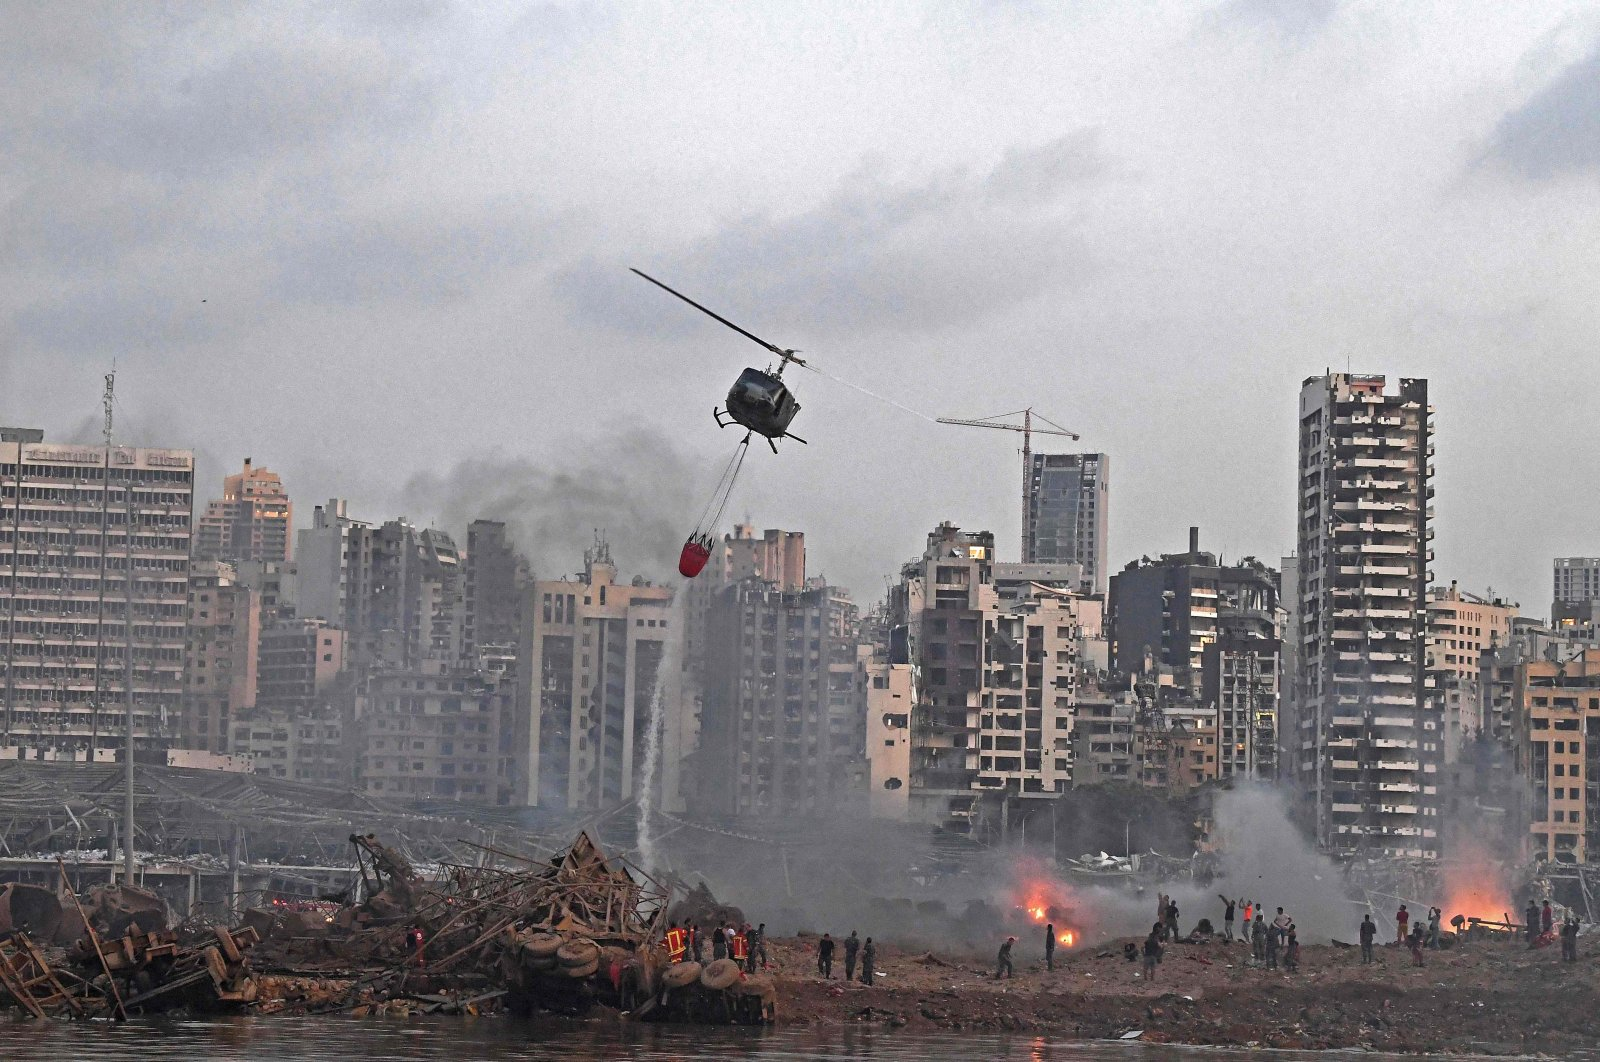 A helicopter is dispatched to put out multiple fires at the scene of the massive explosion that hit a port in Beirut, Lebanon, Aug. 4, 2020. (AFP Photo)